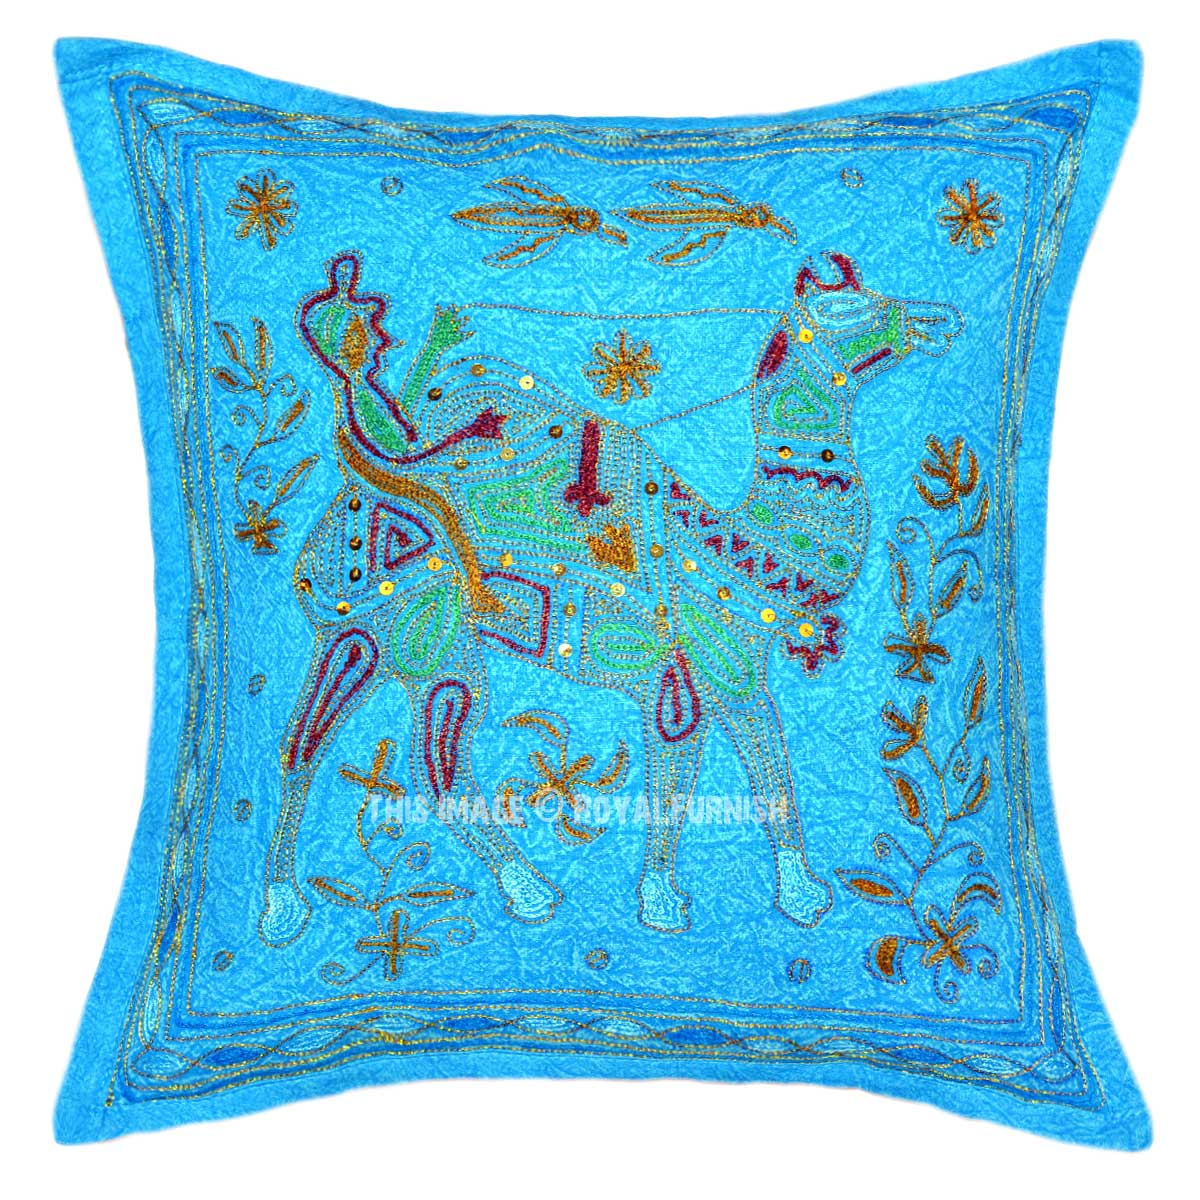 Turquoise Camel Riding Hand Embroidered Accent Throw Pillow Cover - RoyalFurnish.com